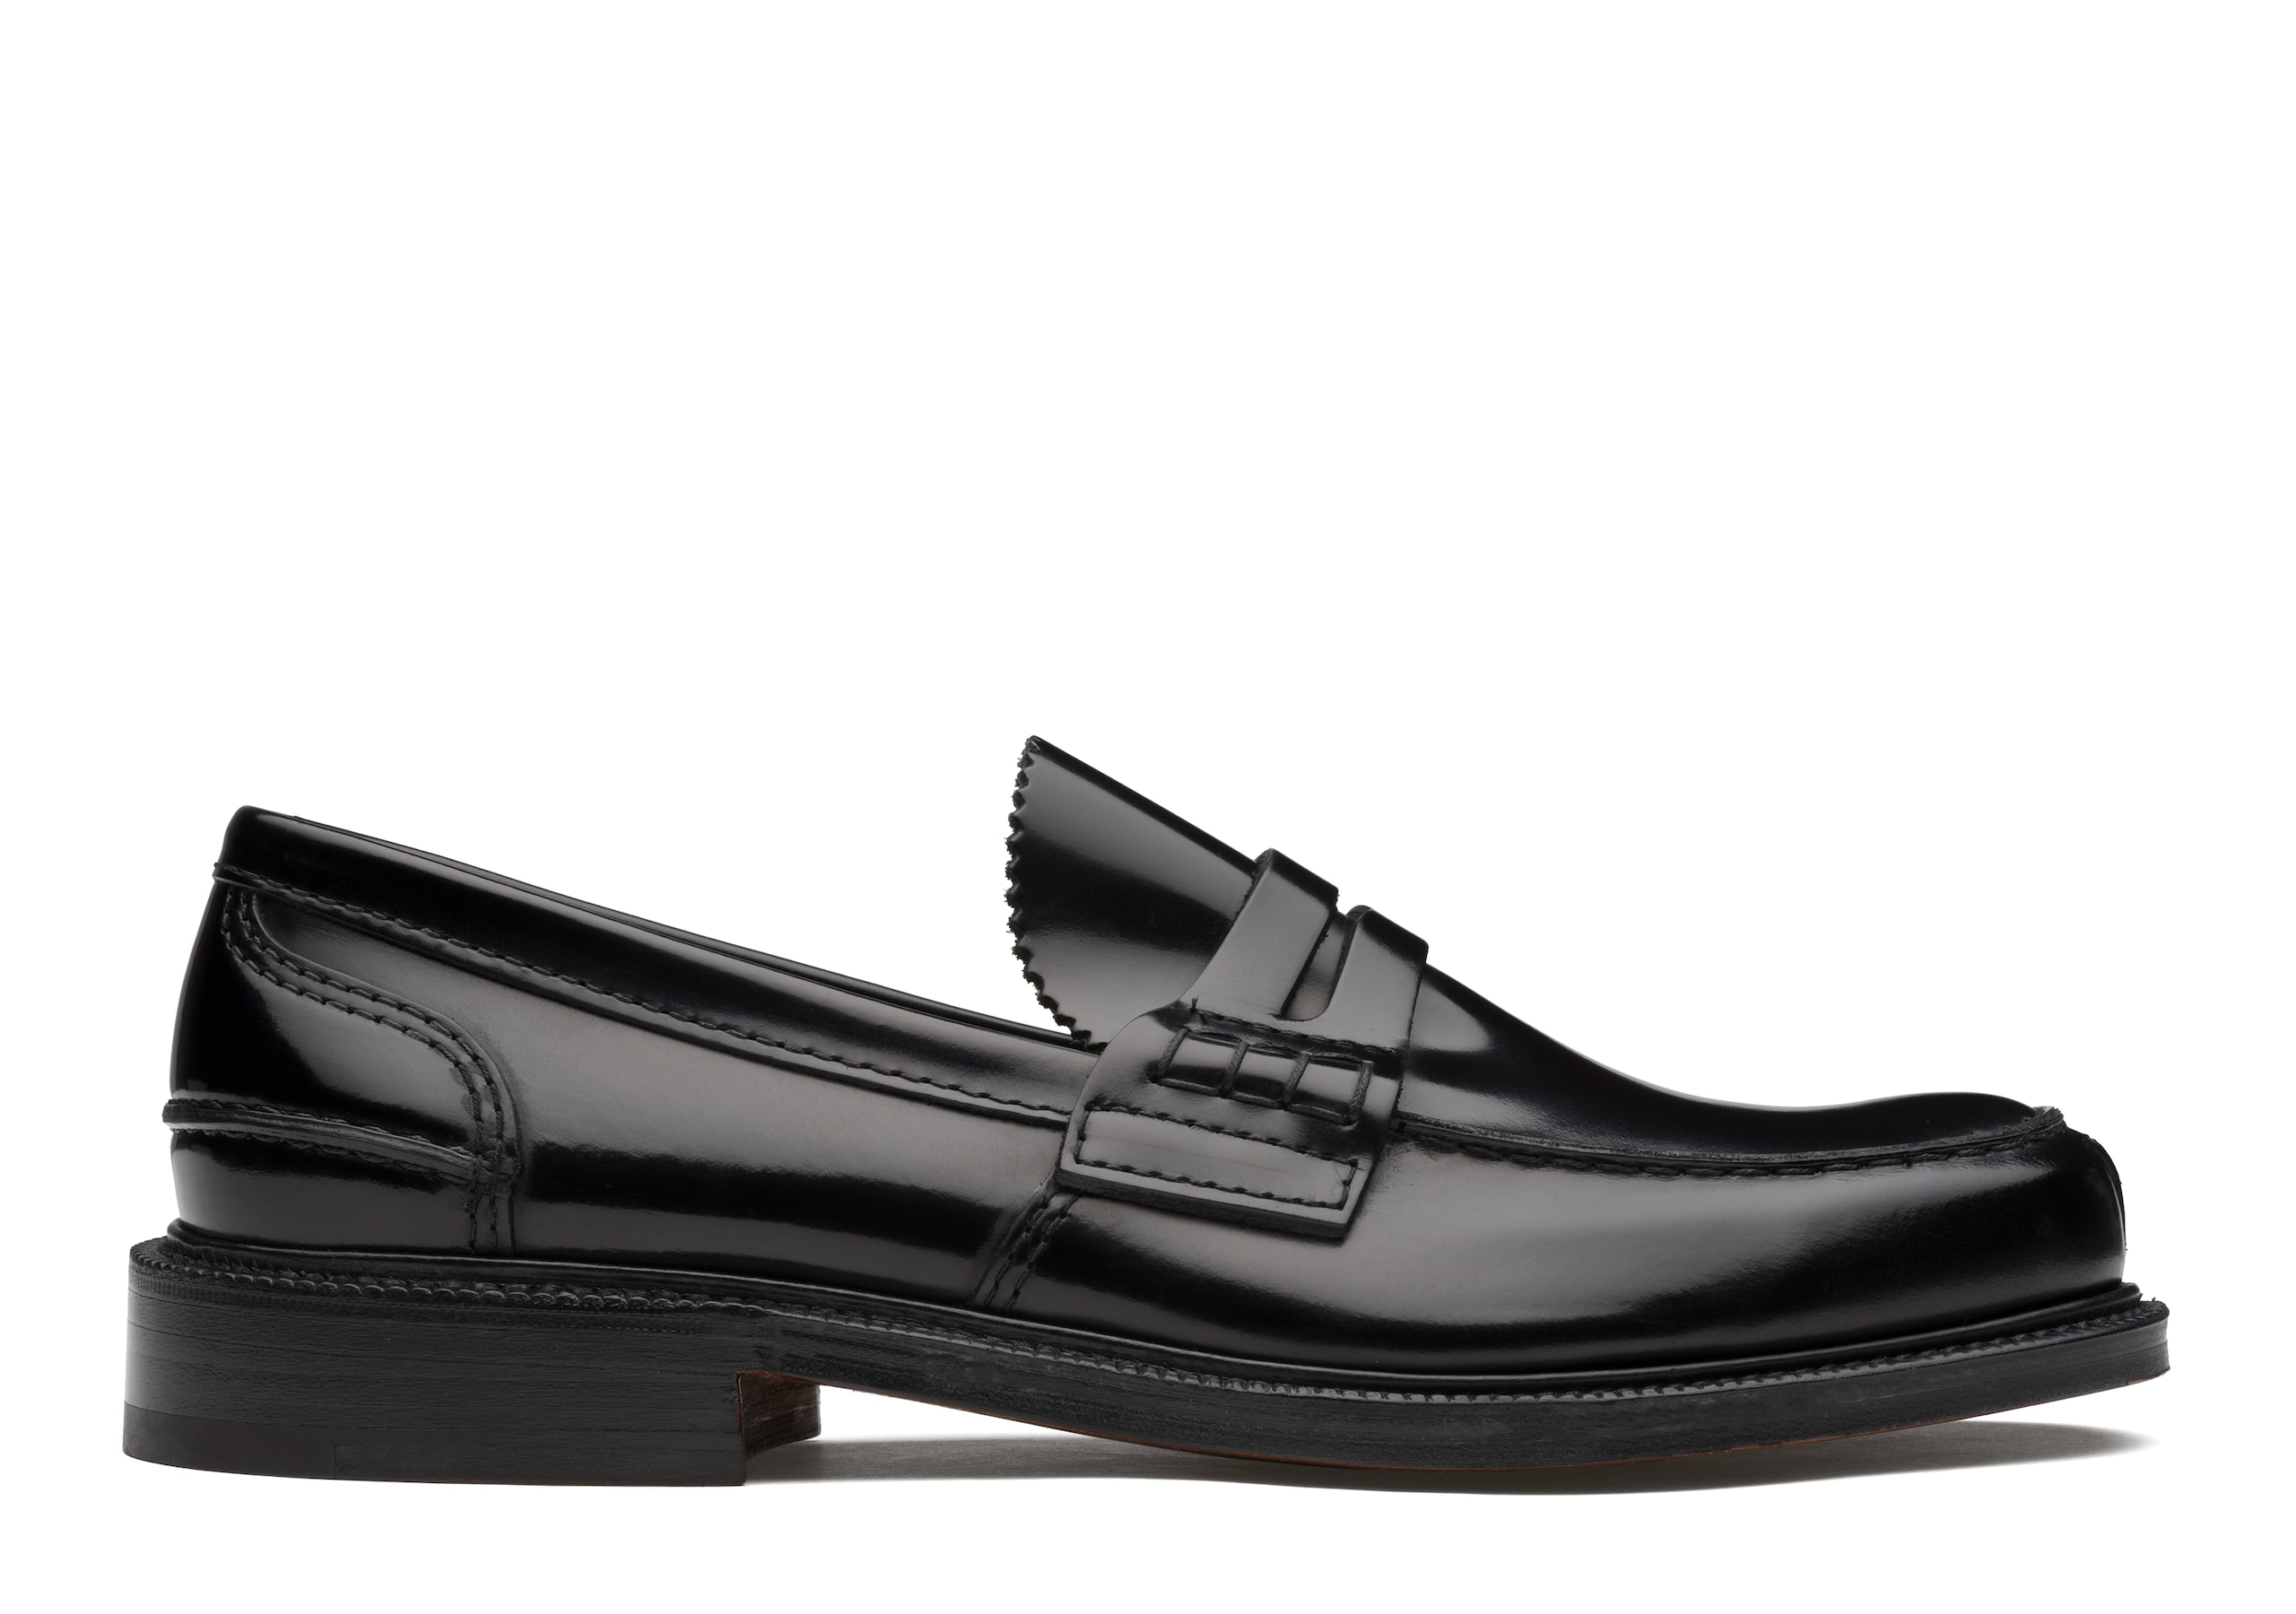 Willenhall Church's Bookbinder Fumè Loafer Black